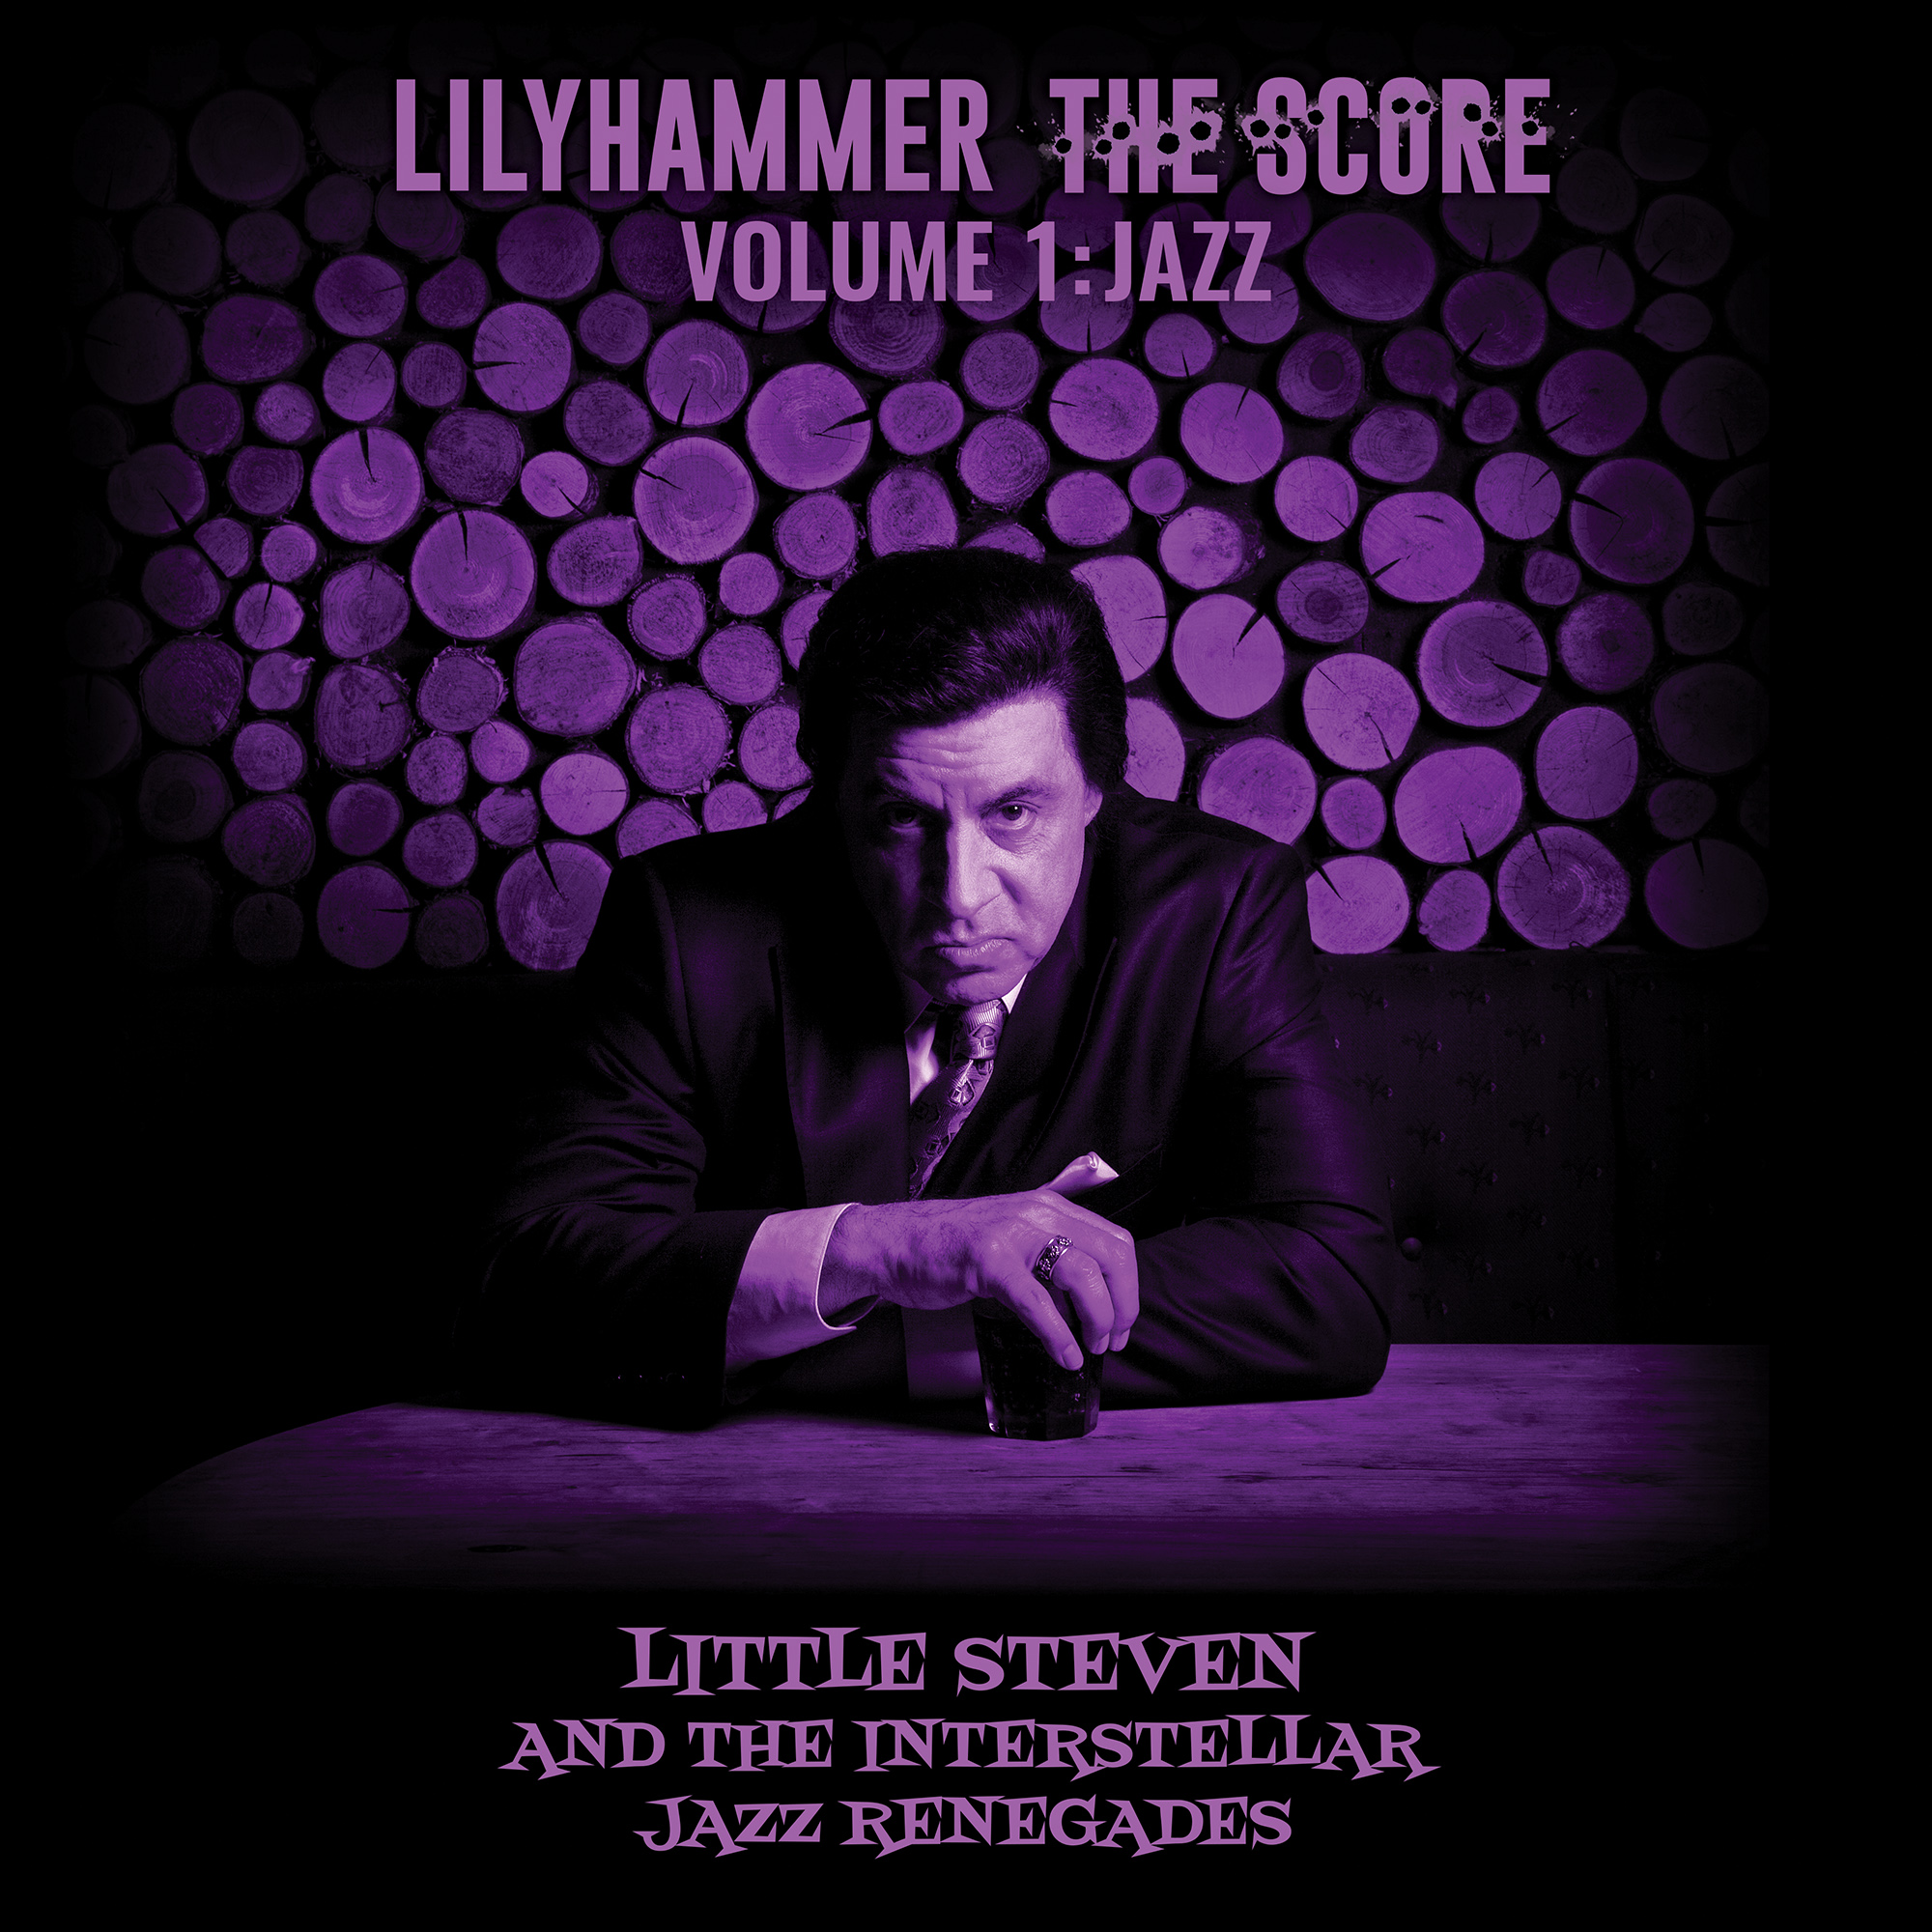 LITTLE STEVEN AND THE INTERSTELLAR JAZZ RENEGADES   LILYHAMMER: THE SCORE - VOLUME 1 AND VOLUME 2    BUY NOW